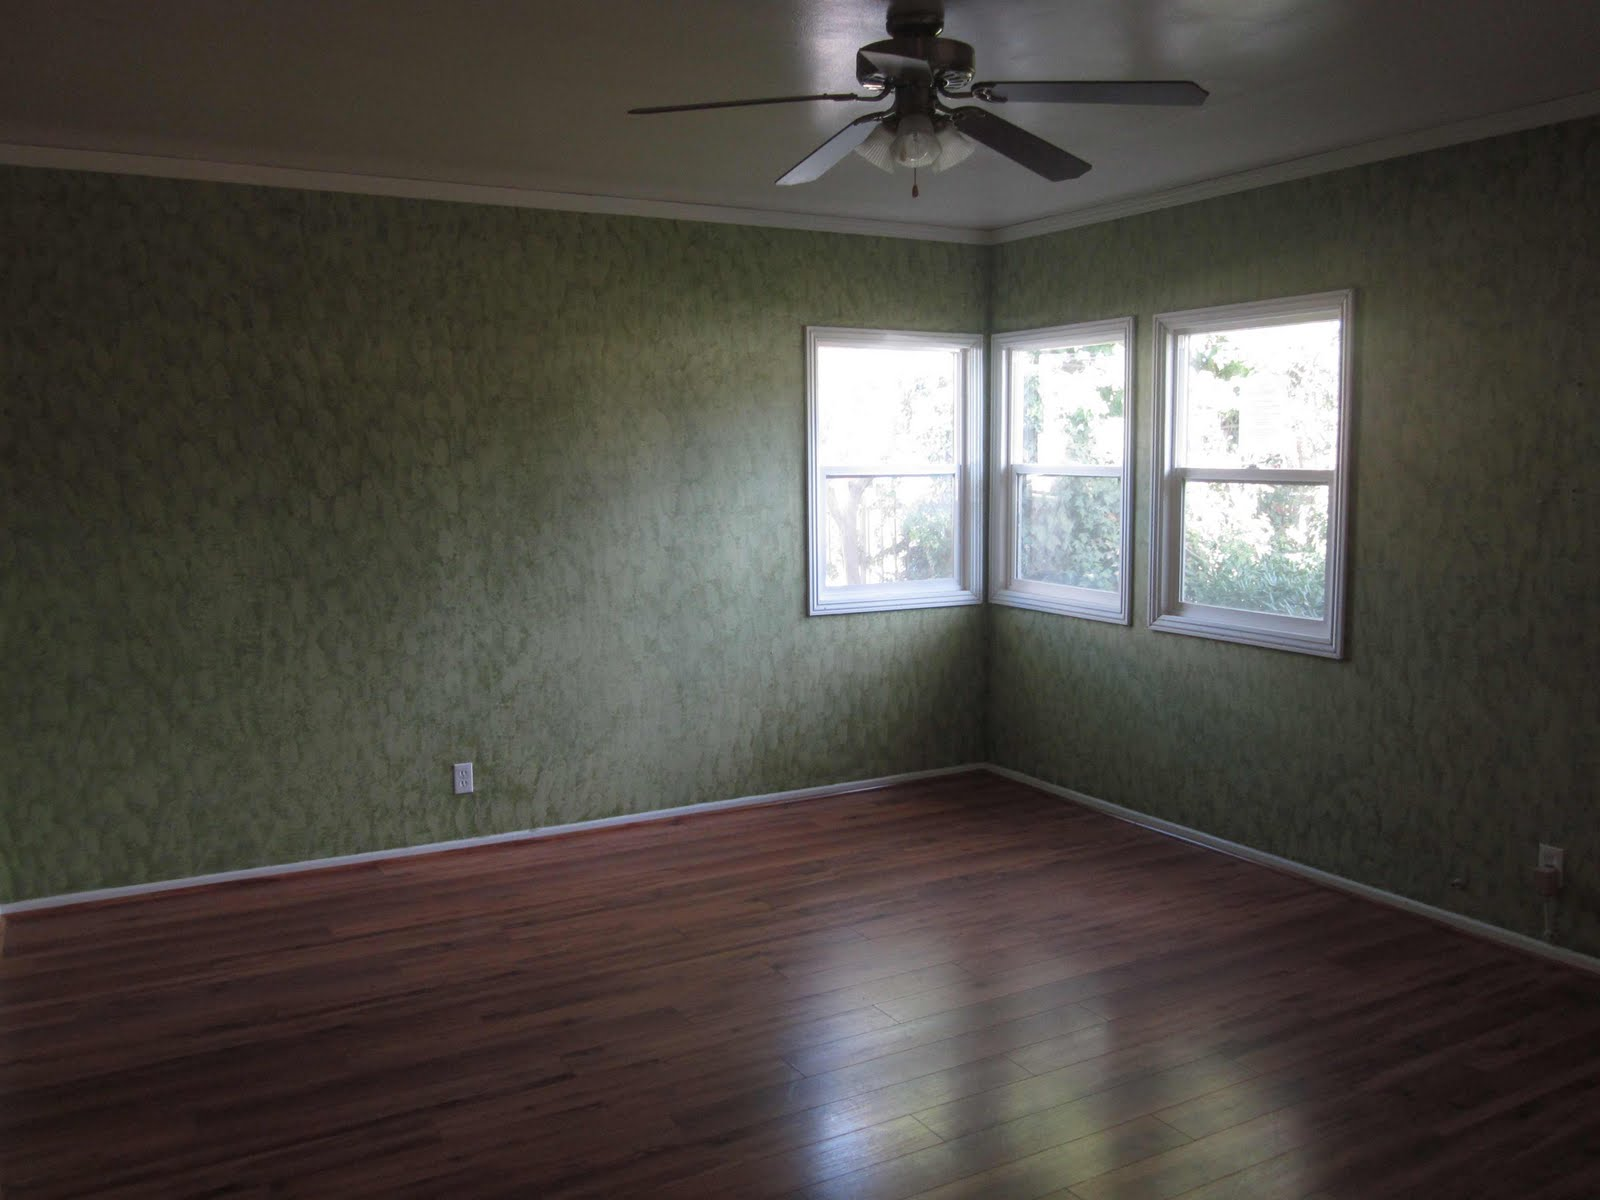 Artistic and simple green painted wall placement homes alternative 61410 Master bedroom with green walls